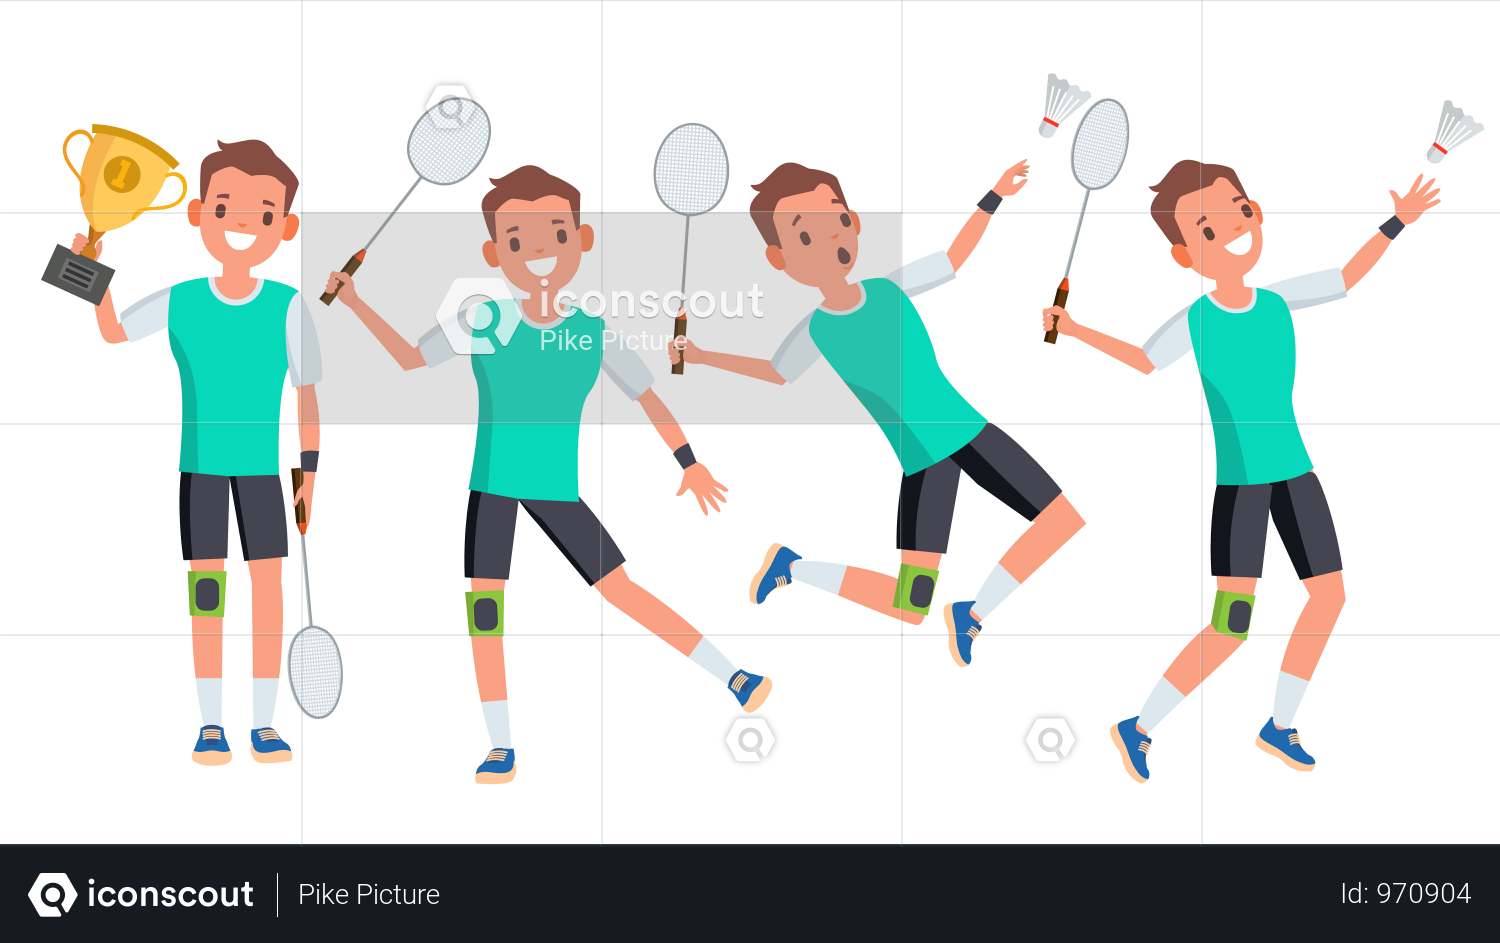 Premium Badminton Male Player Vector Playing In Different Poses Man Athlete Isolated On White Cartoon Character Illustration Illustration Download In Png V Avec Images